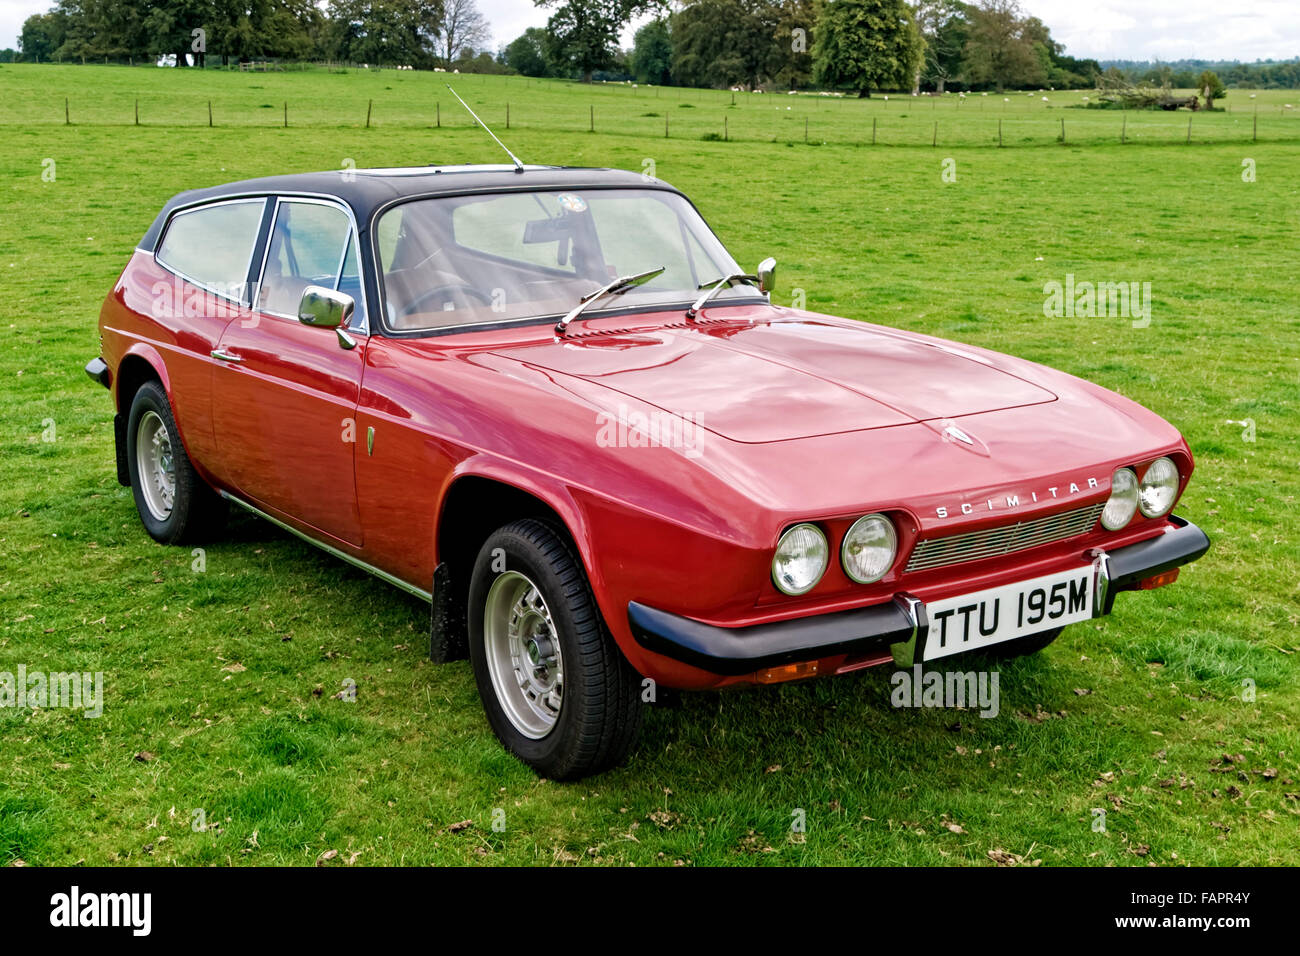 A Reliant Scimitar GTE 2 door coupe classic motor car at the Breamore House Classic Car Show, Hampshire, United - Stock Image